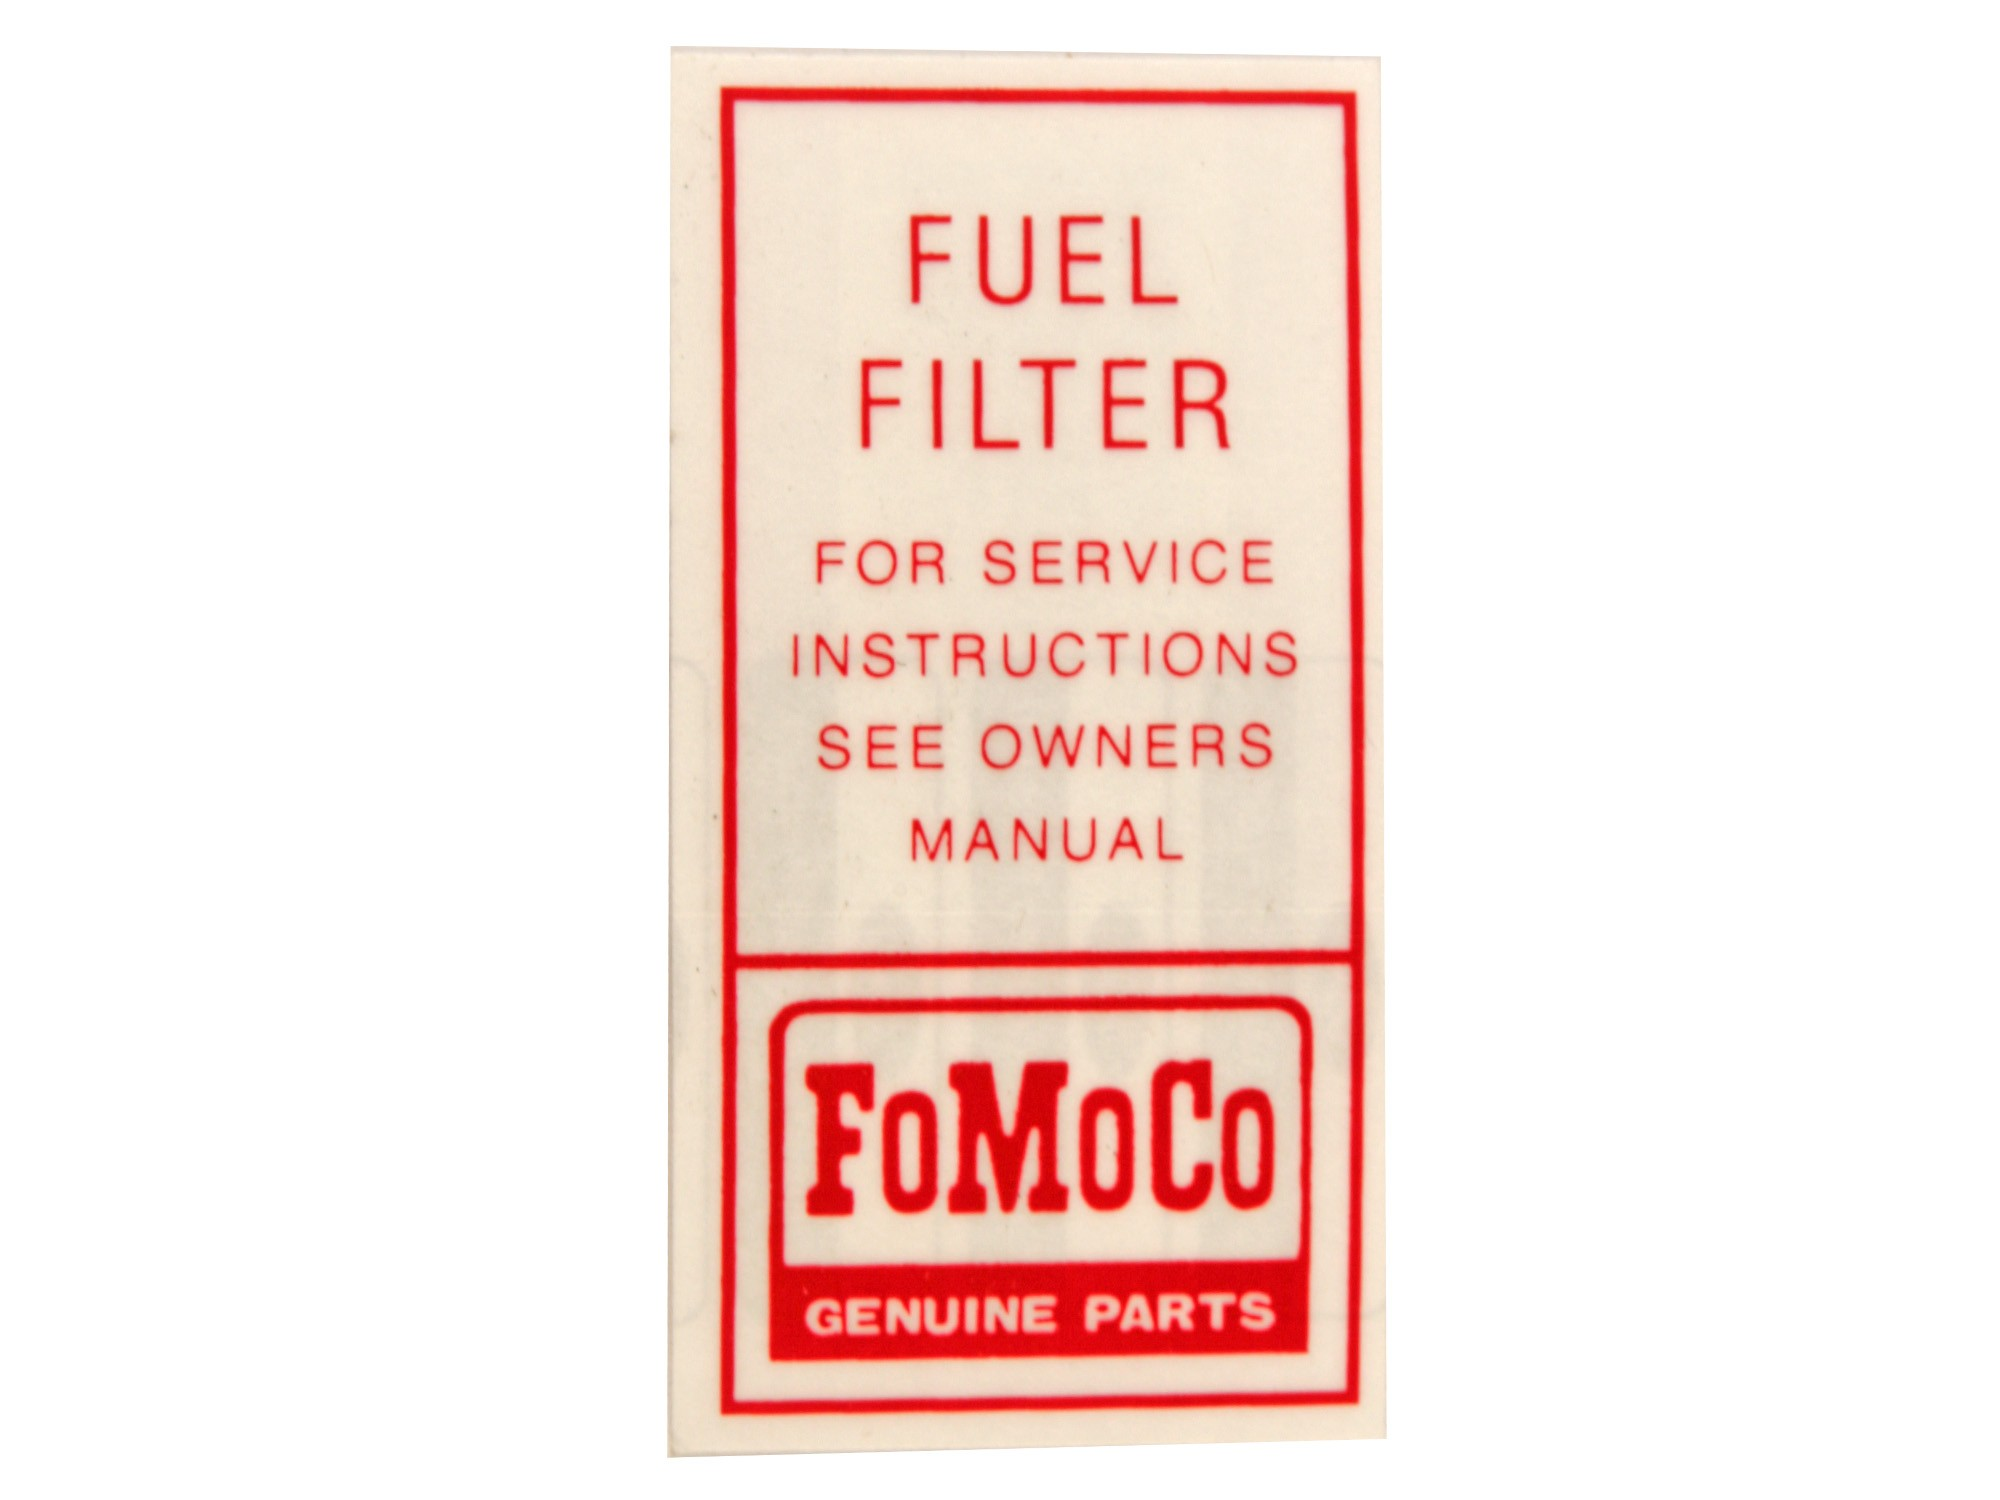 1966 mustang fuel filter fuel pump filter decal df280 1964 1 2 1966 kentucky mustang  fuel pump filter decal df280 1964 1 2